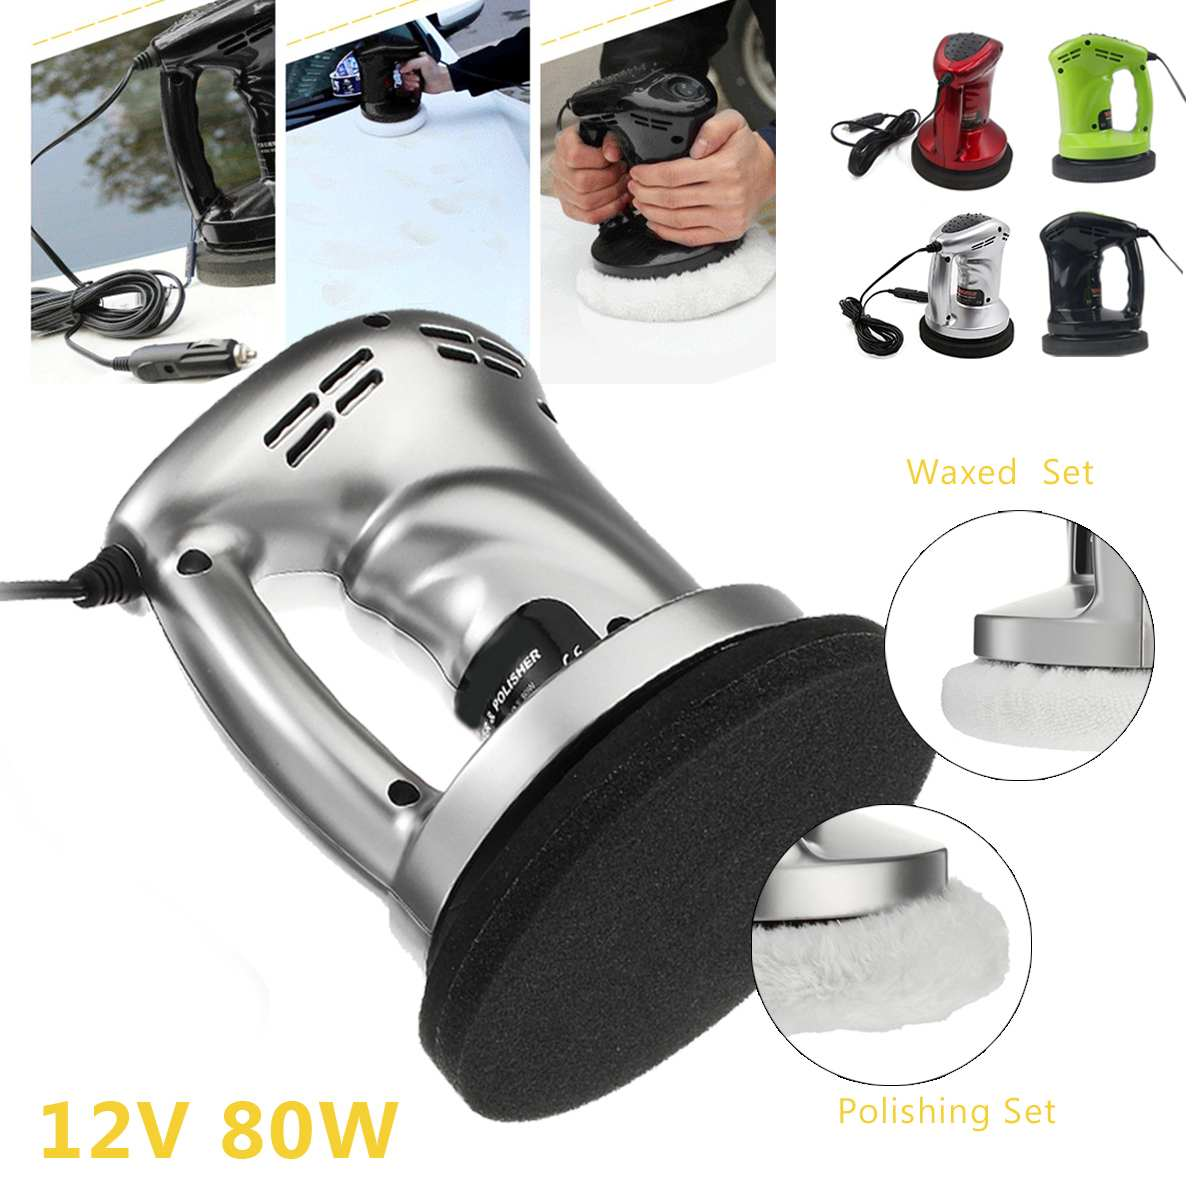 12V  Car Auto Polisher Vehicle Polishing Machine   Electric Tool Buffing Waxing  Buffer Waxer ABS Vacuum Cleaner Tools Kit